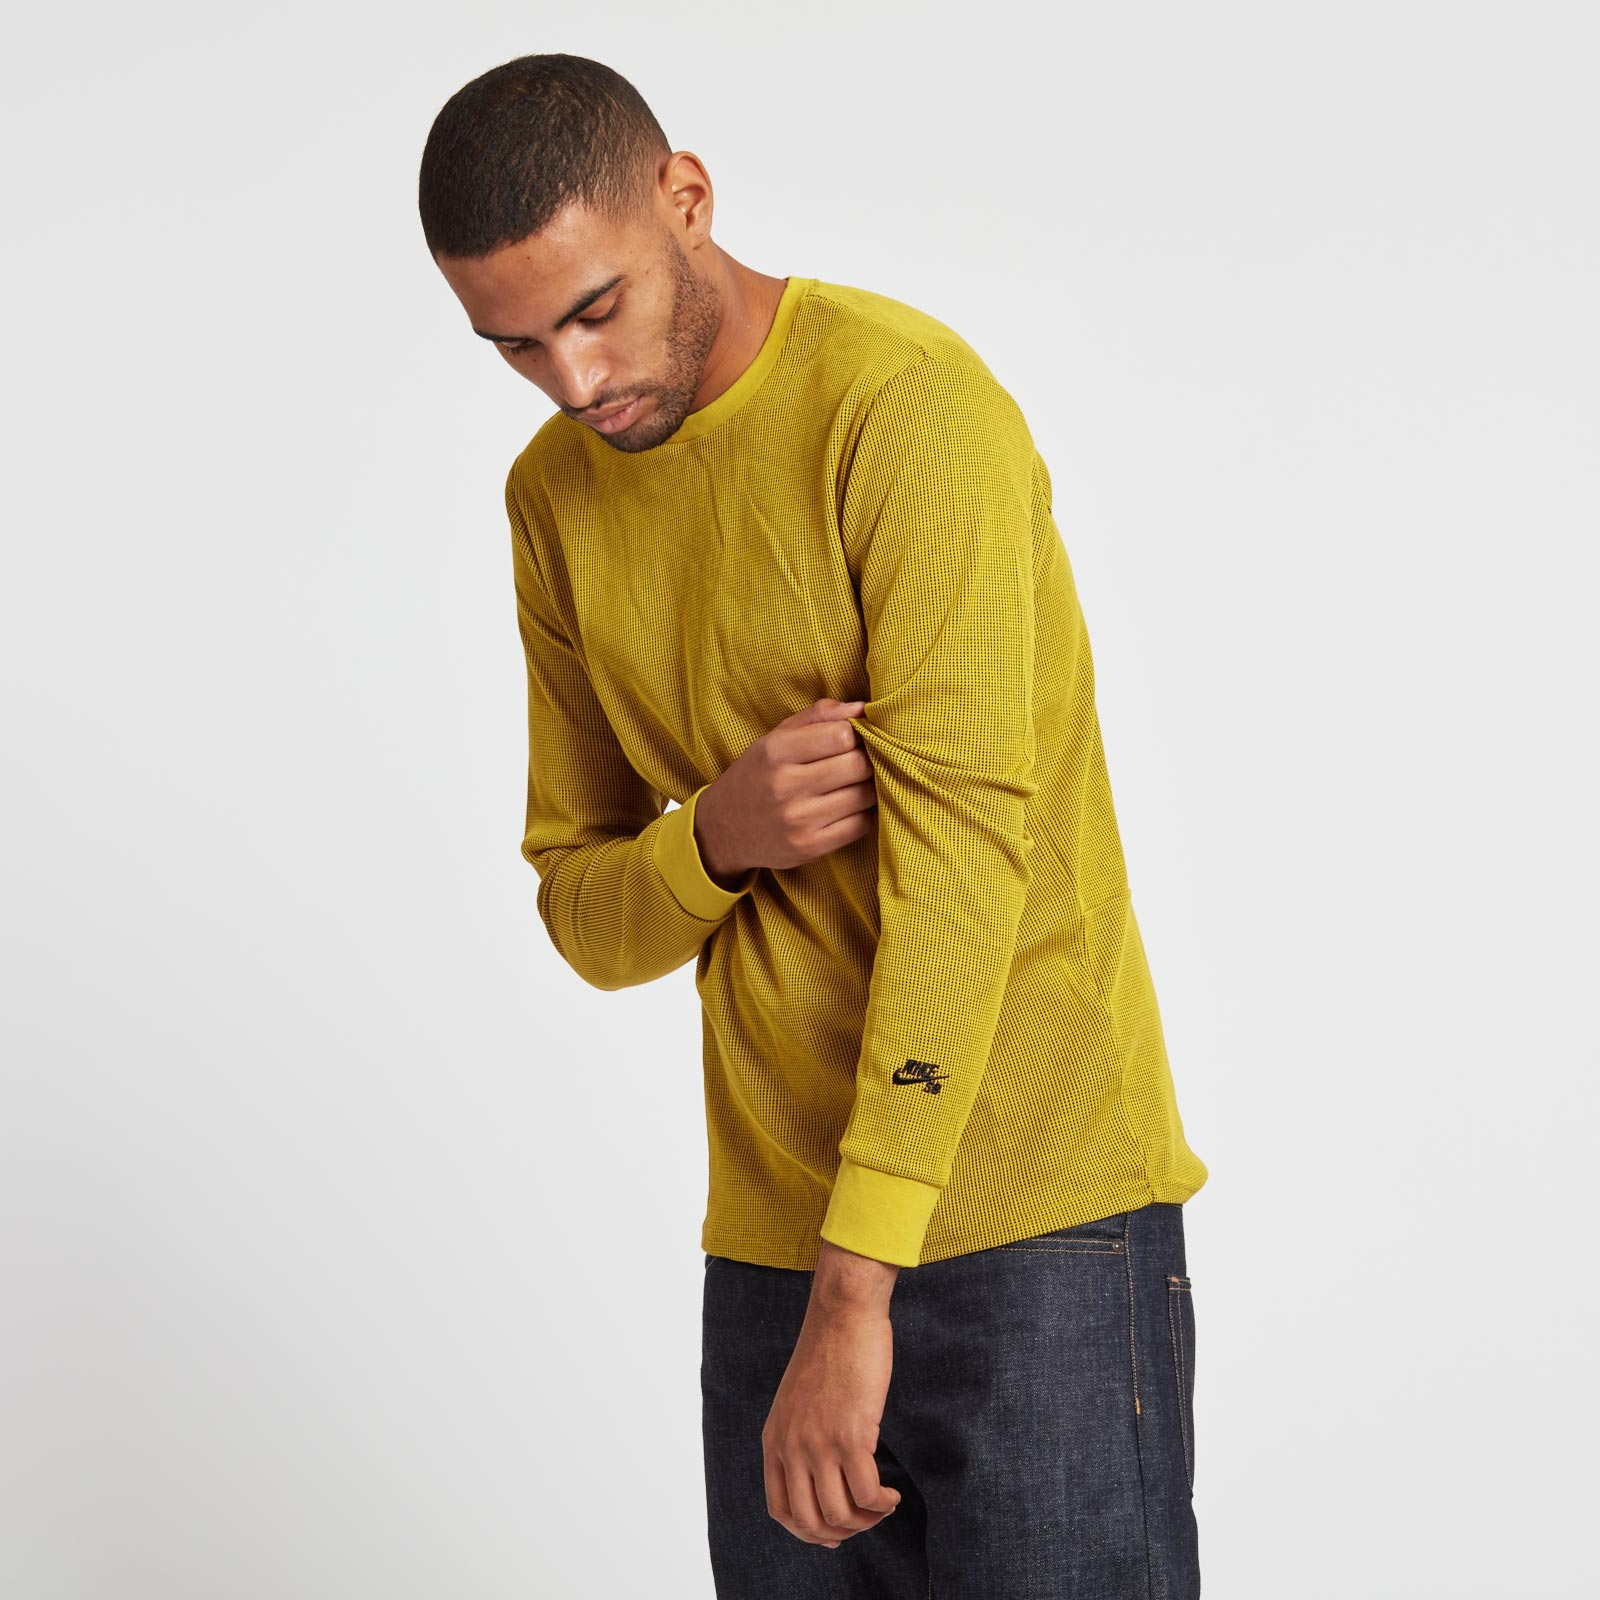 514ce7fb Nike Long Sleeve Thermal Top - 800964-353 - Sneakersnstuff ...